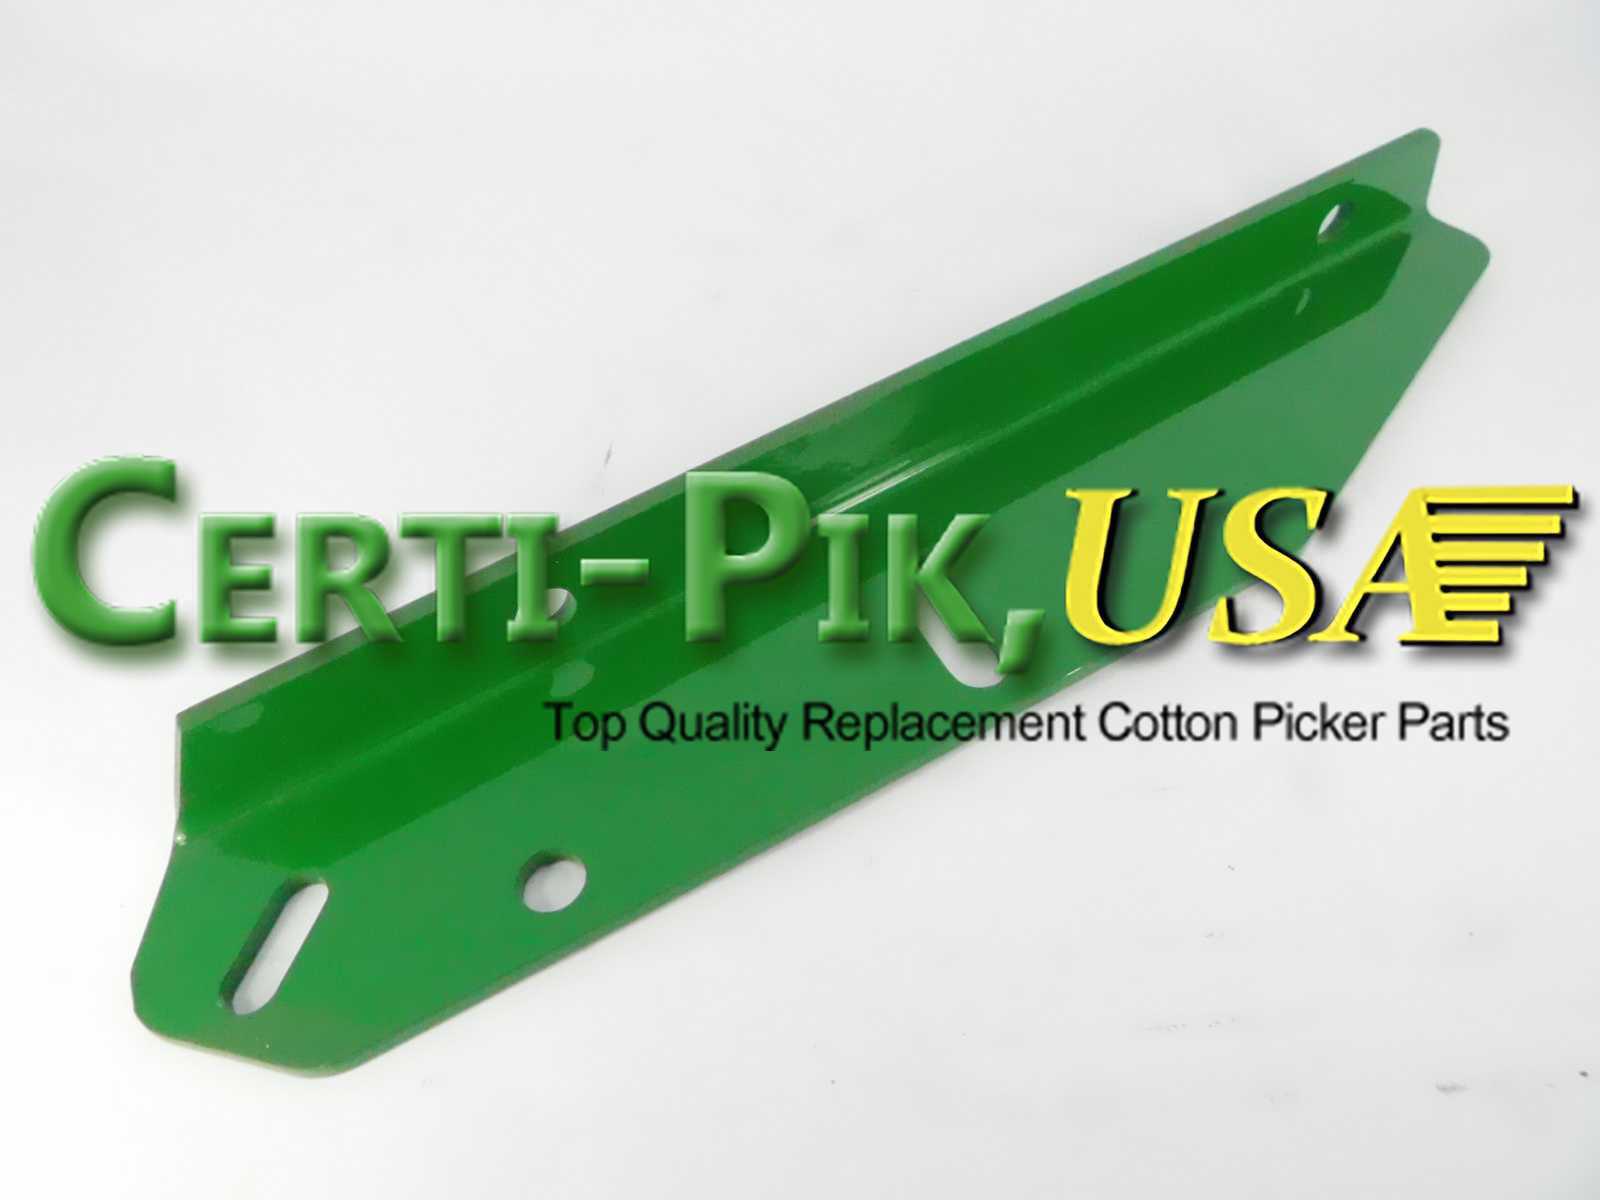 Picking Unit Cabinet: John Deere 9976-CP690 Upper Cabinet N272405 (72405) for Sale